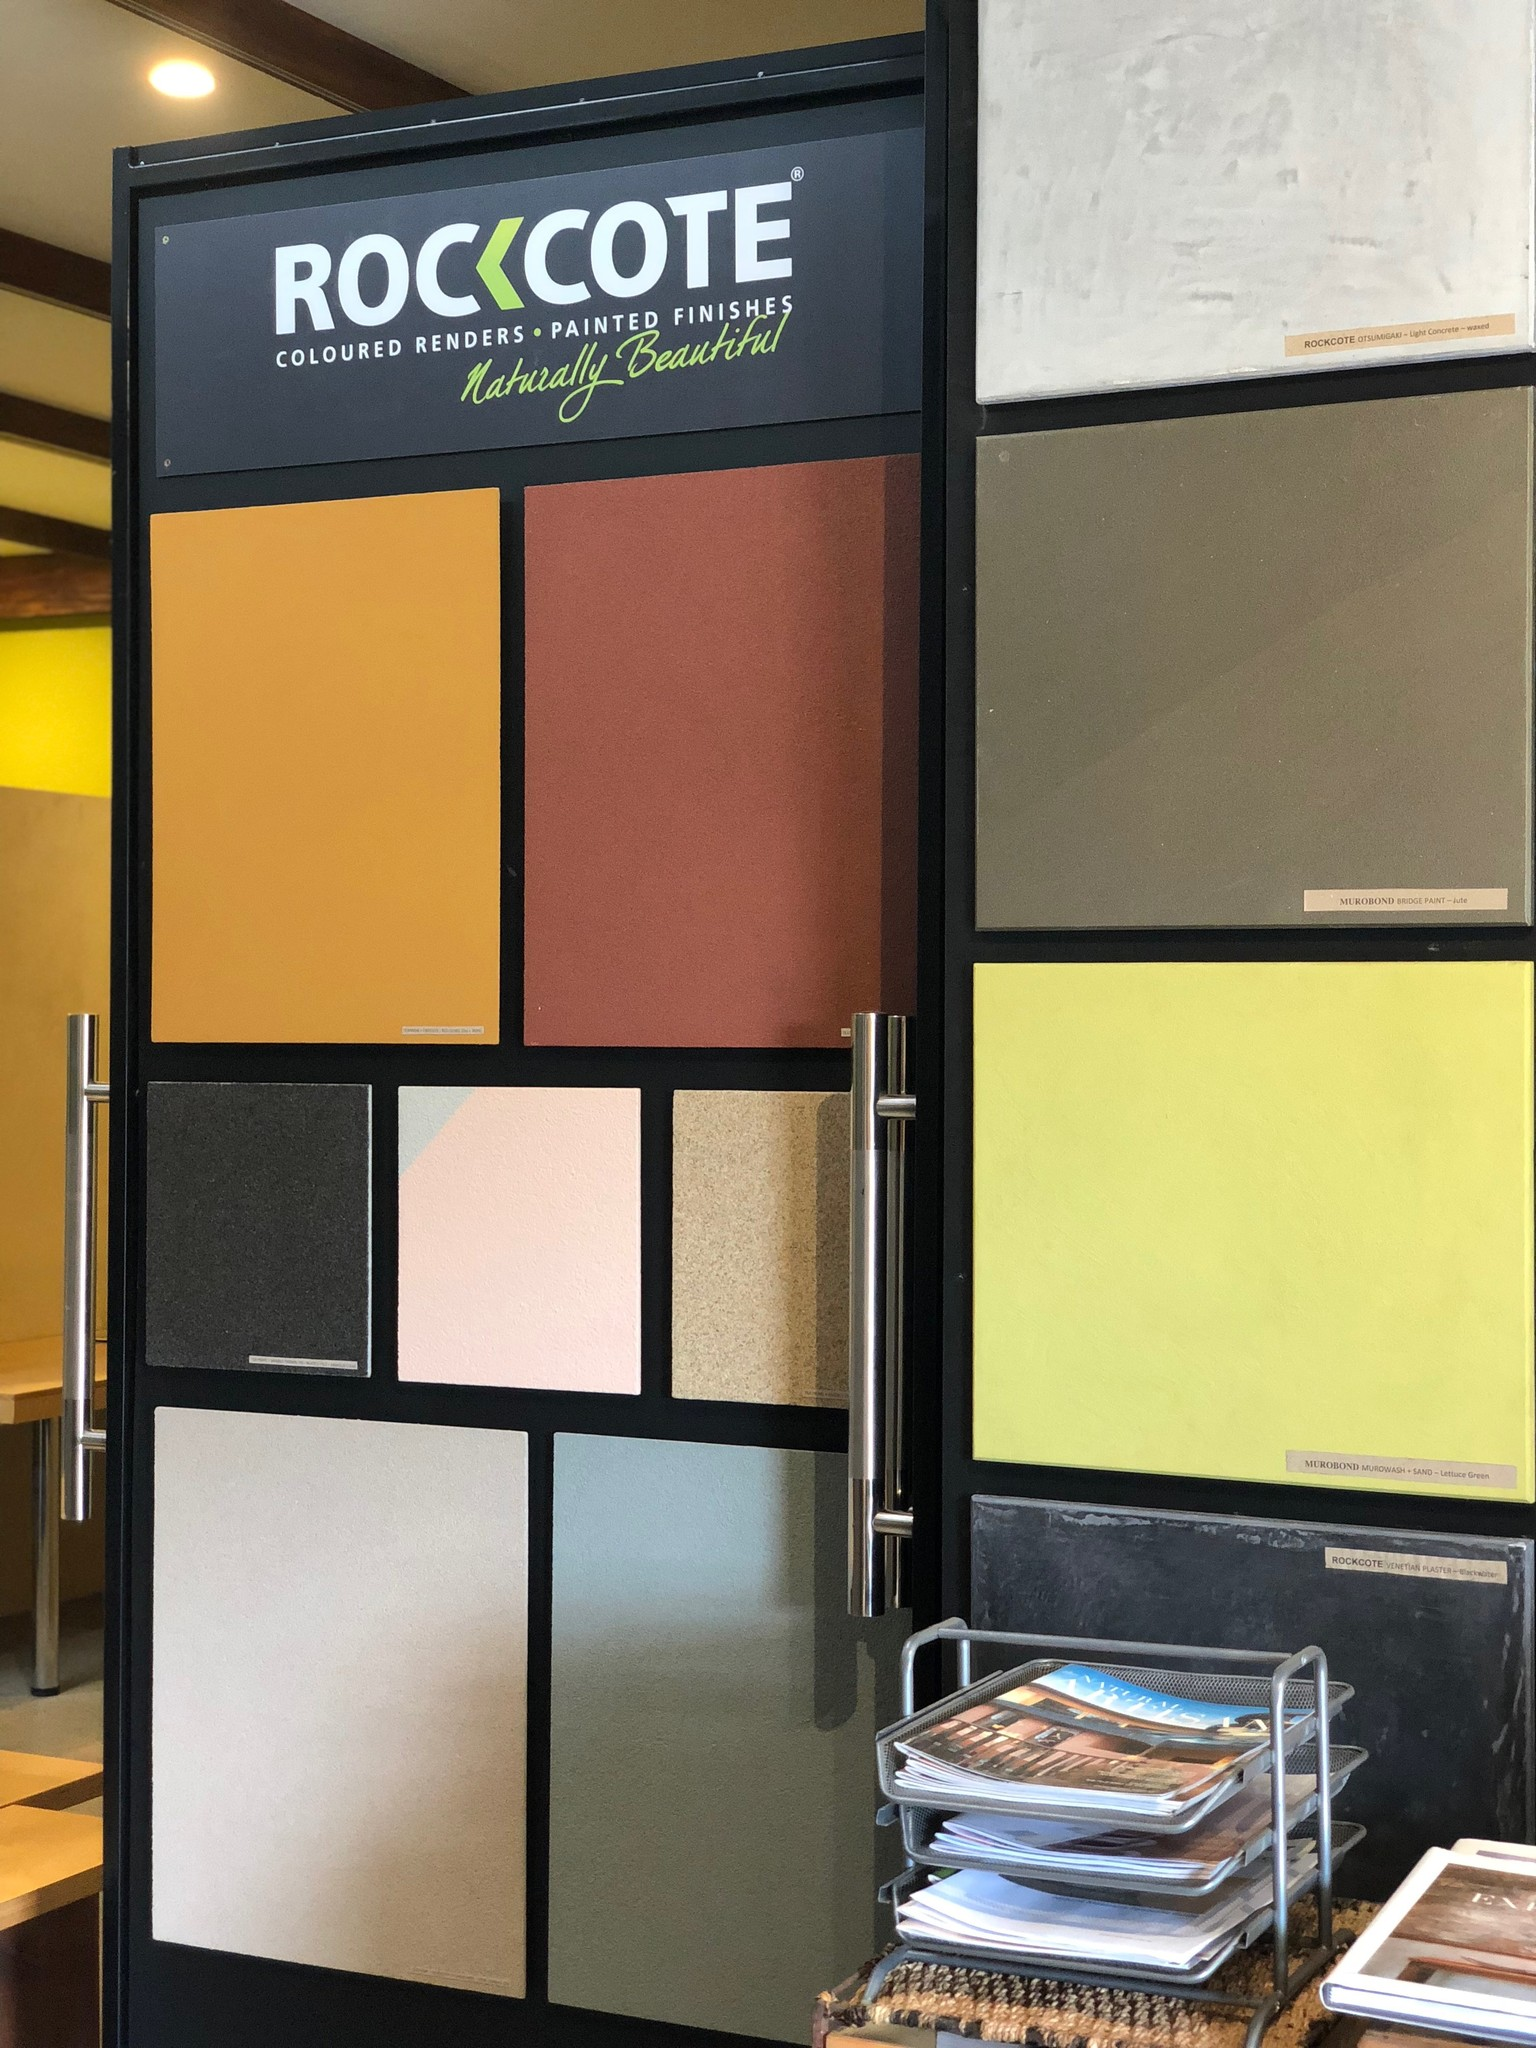 painted-earth-byron-bay-rockcote-display